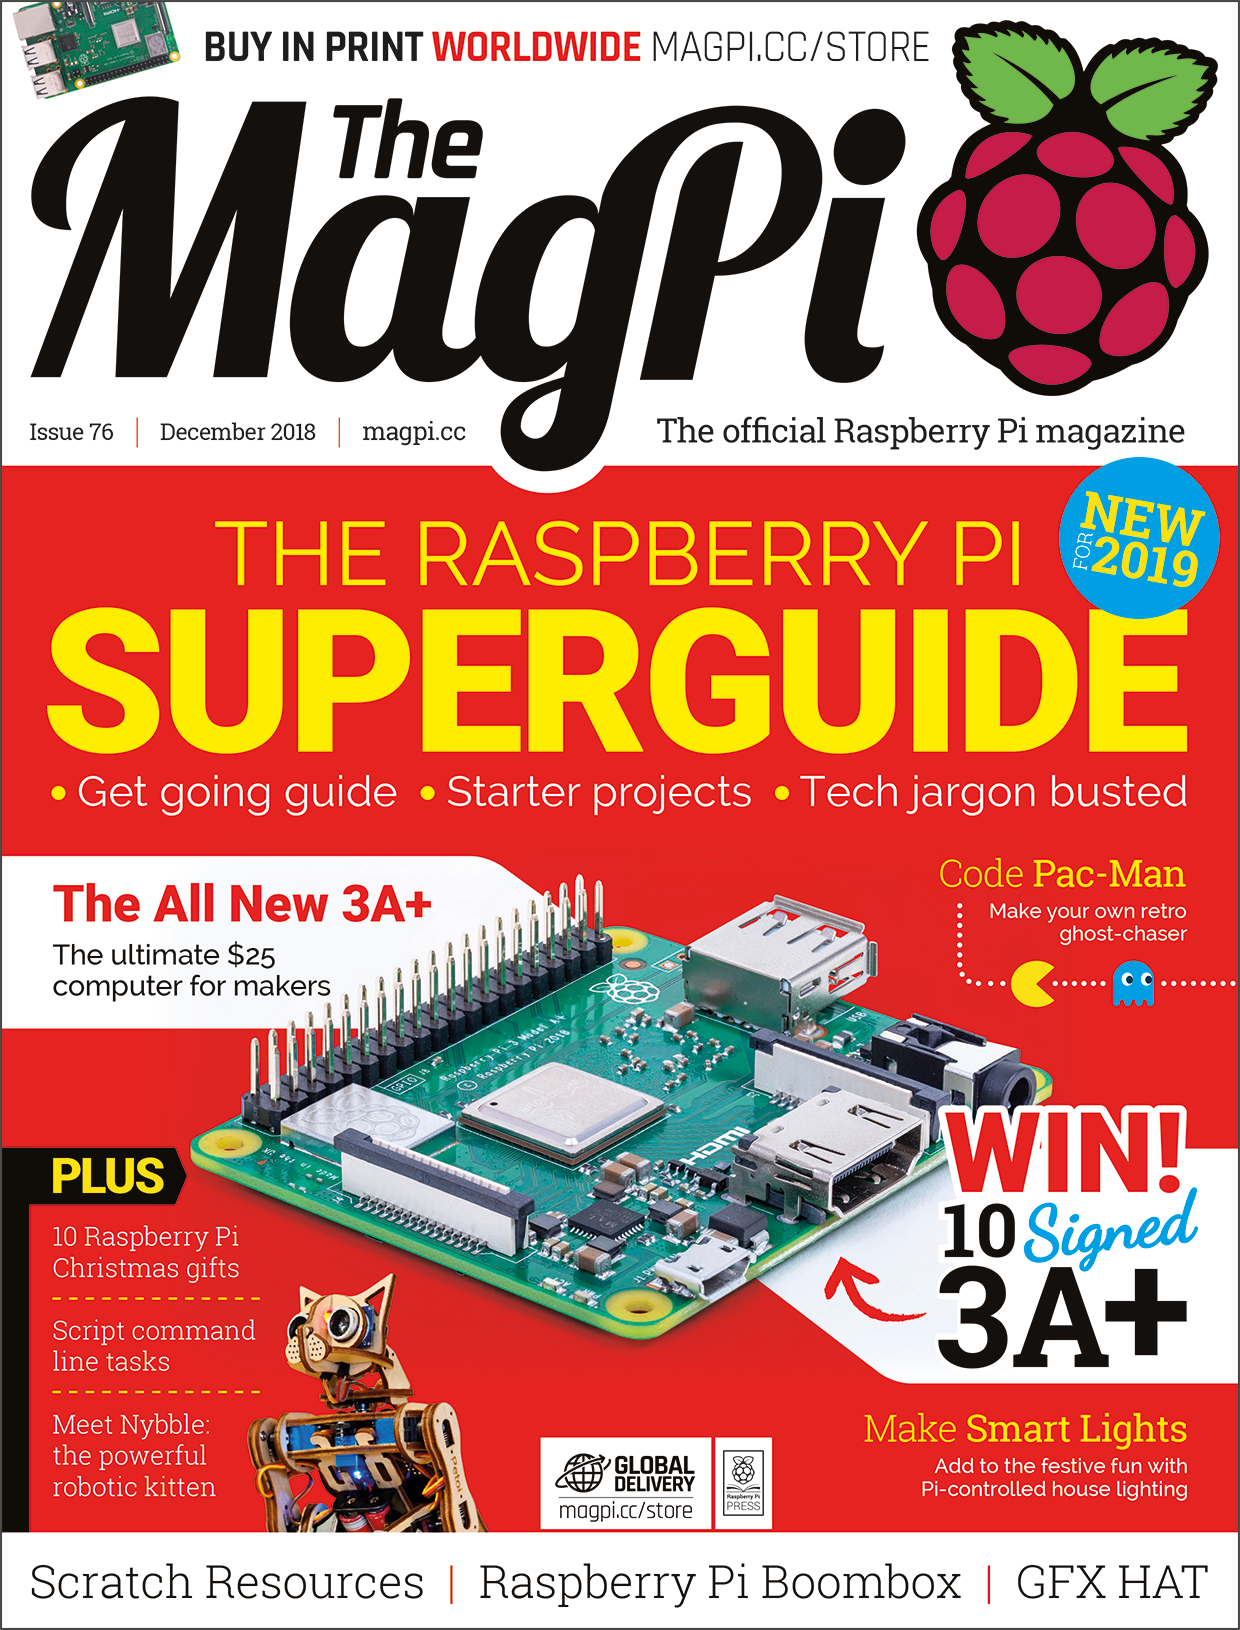 MagPi 76: our updated Raspberry Pi Superguide!